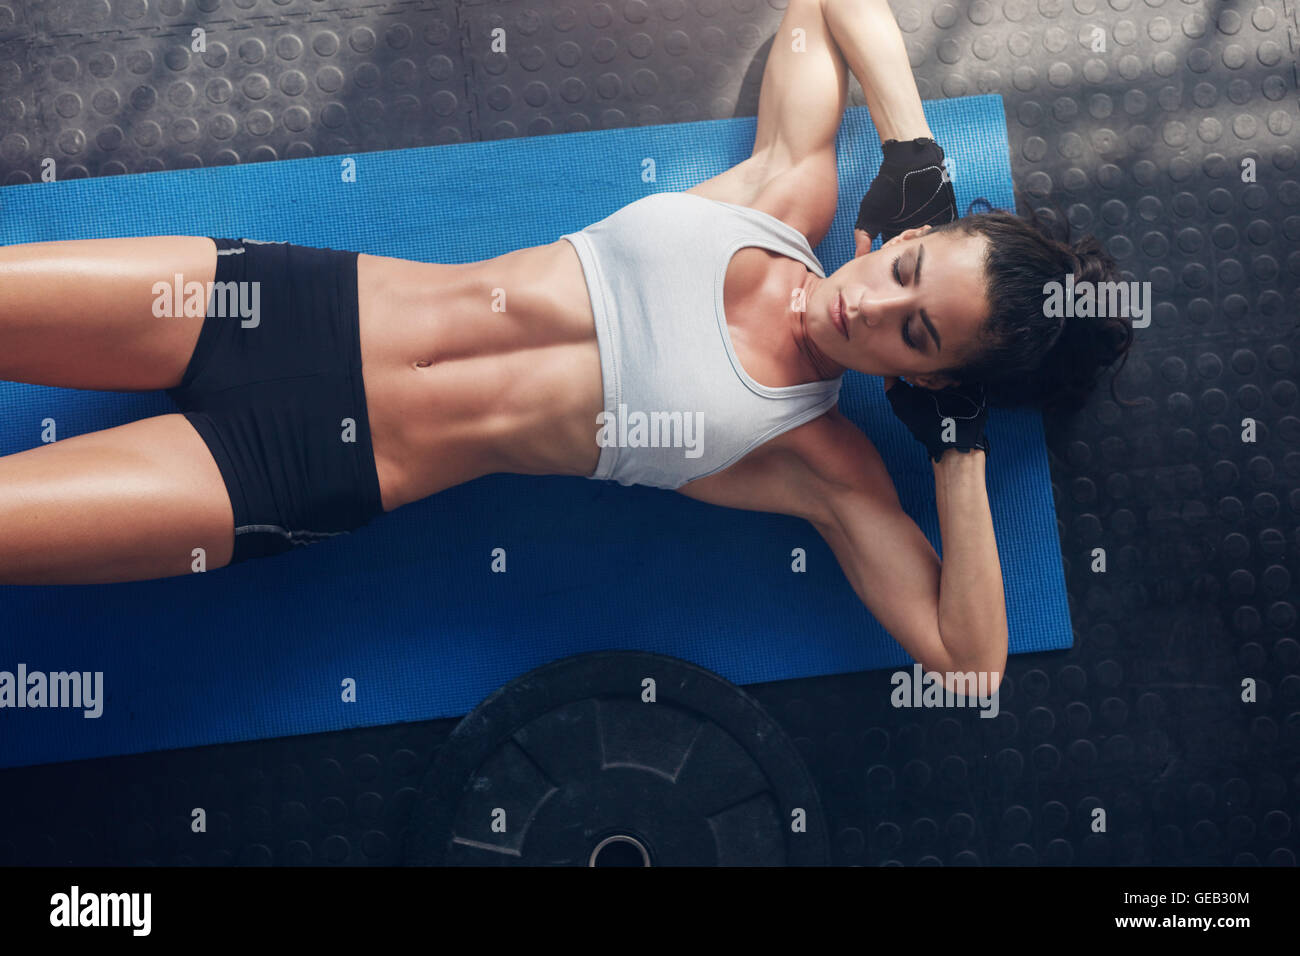 Top View Of Woman Exercising On Yoga Mat Fitness Female Lying Exercise With Her Hands Behind Head At Gym